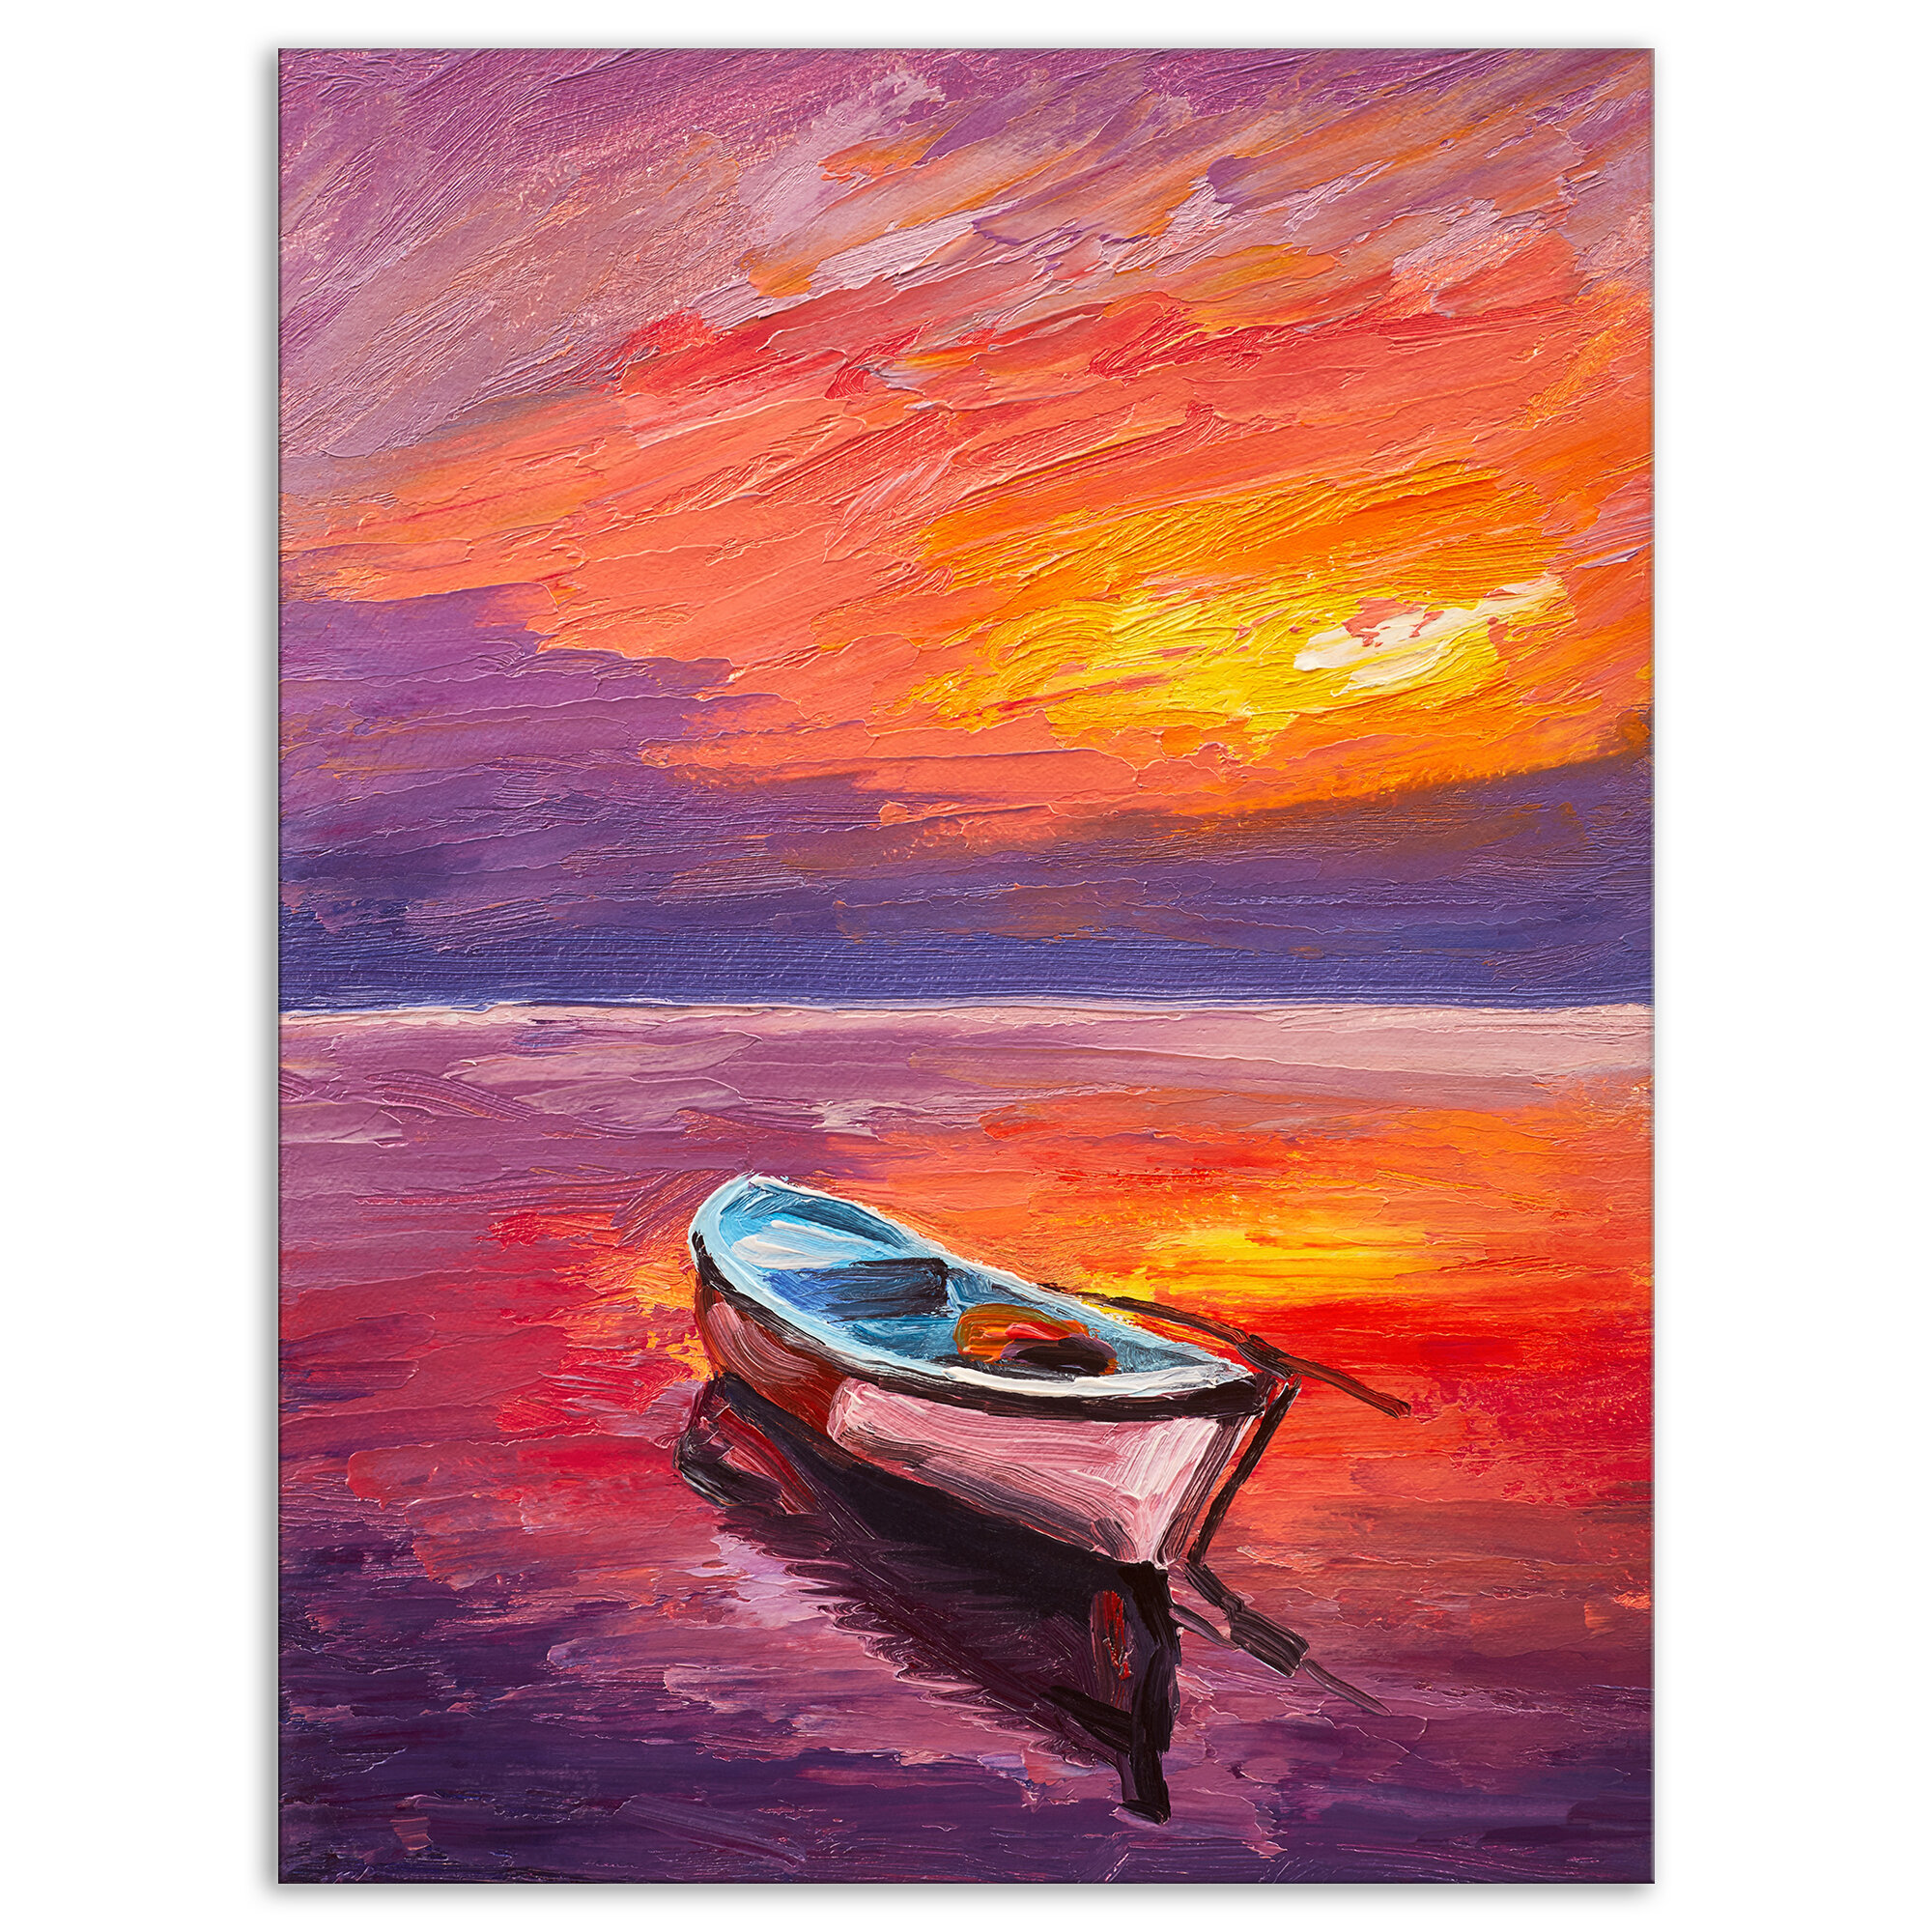 1593 Wall decor Poster Boats at sunset.Poetic Art Design.Home Room Home art